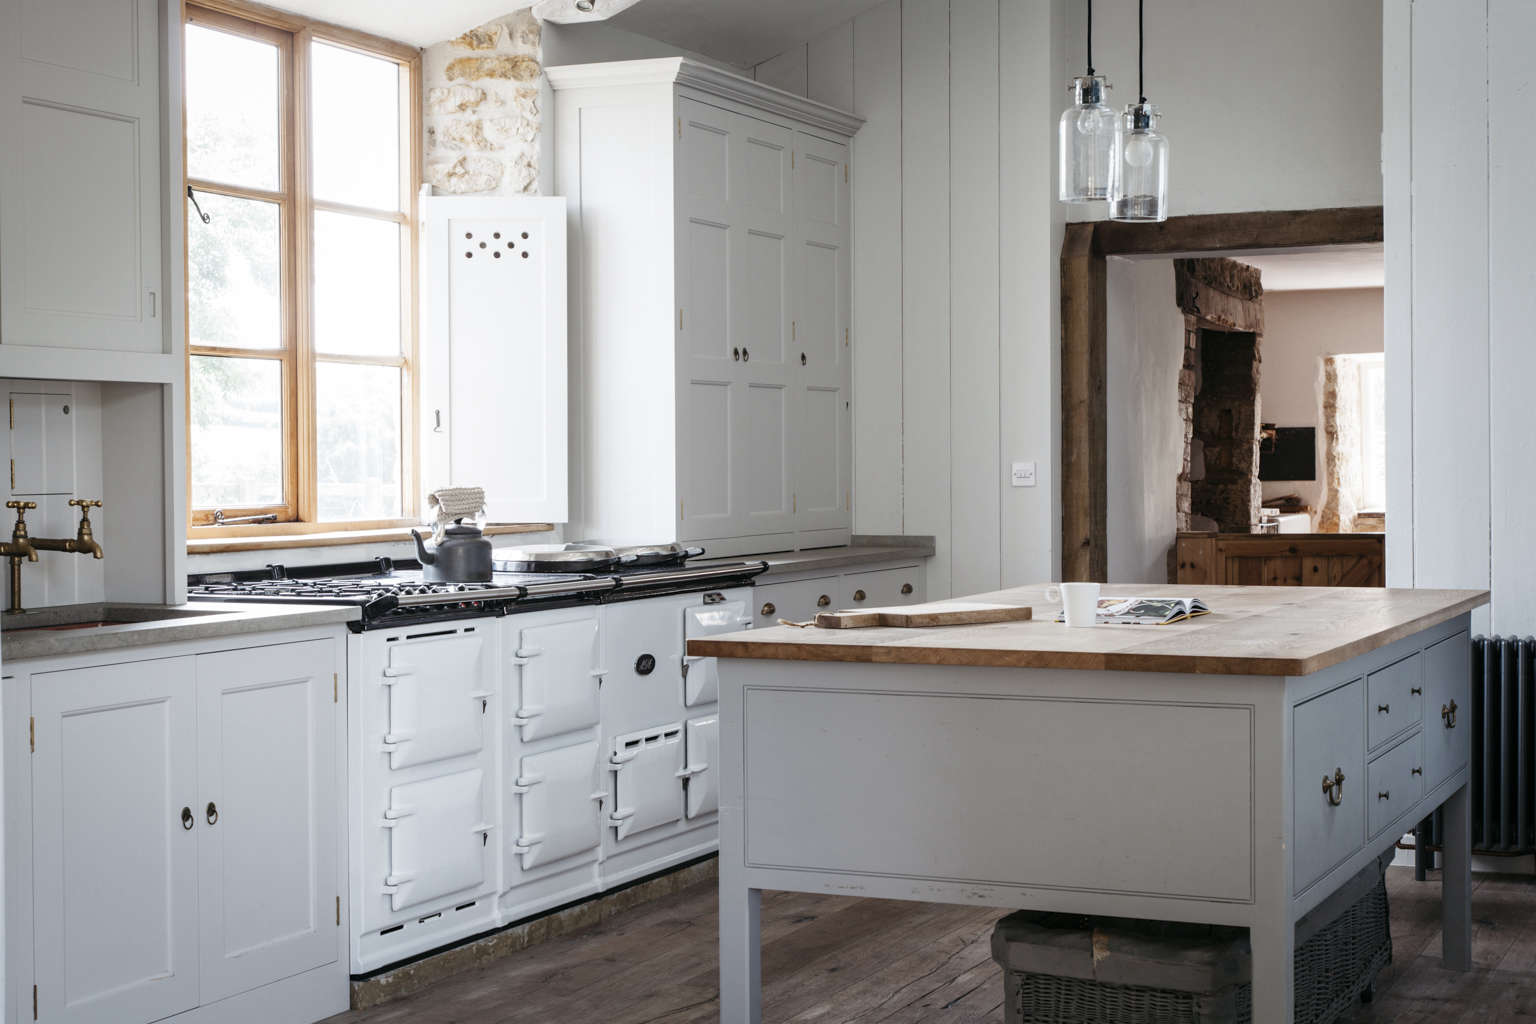 farmhouse kitchen cabinets. A modern spin on a classic English kitchen in Dorset farmohuse by Plain  Kitchen of the Week The Power Numbers